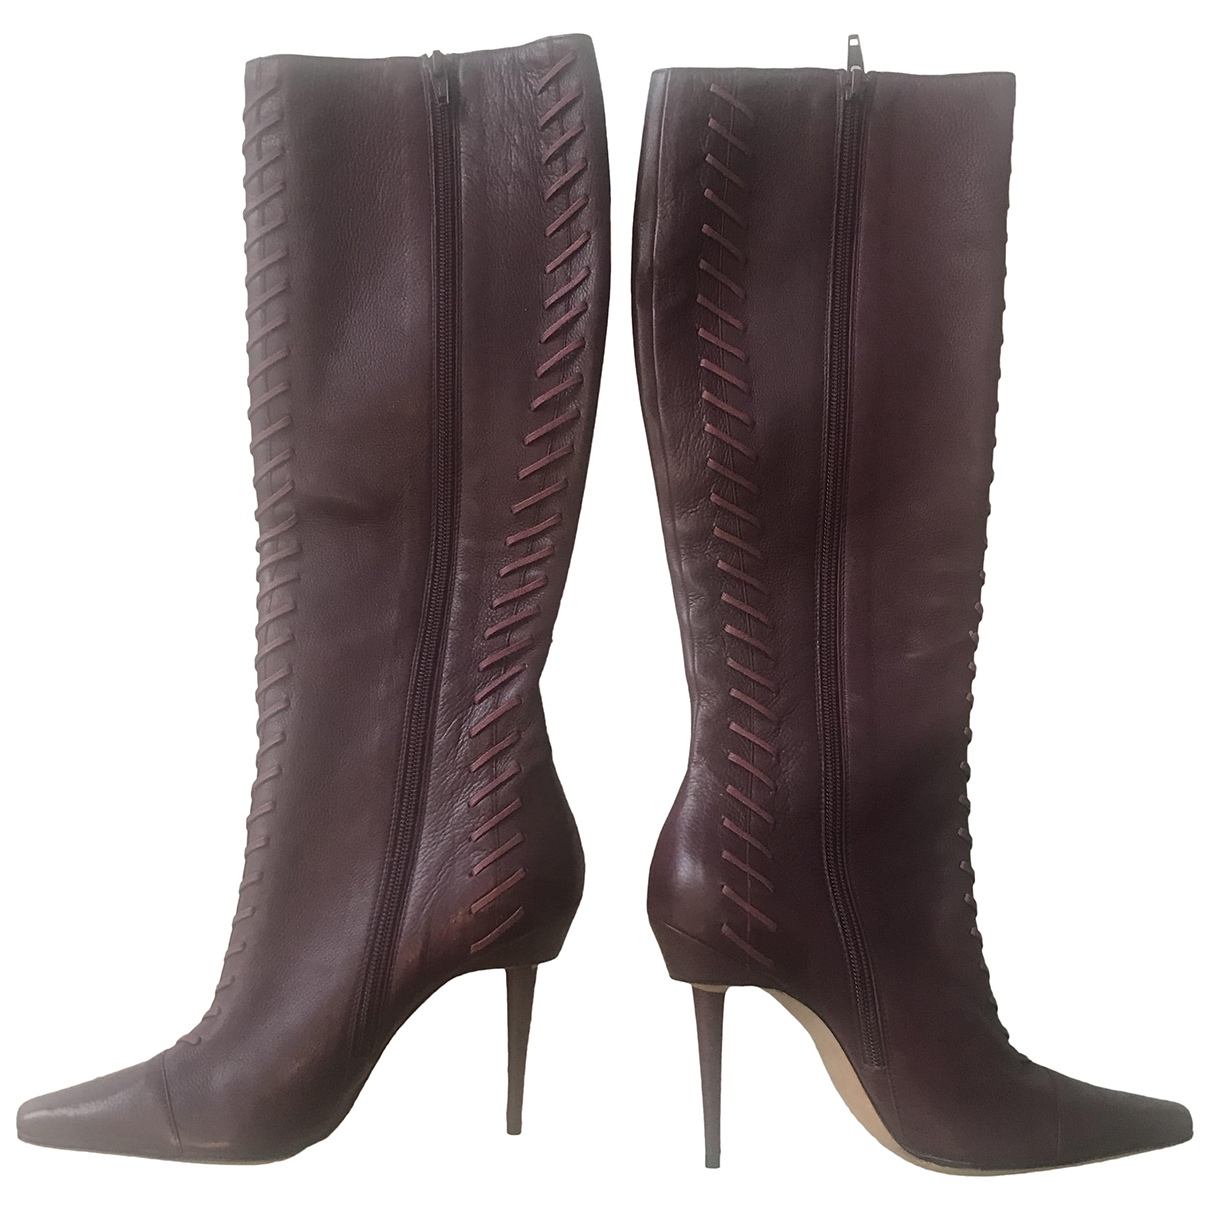 Manolo Blahnik \N Burgundy Leather Boots for Women 38 EU